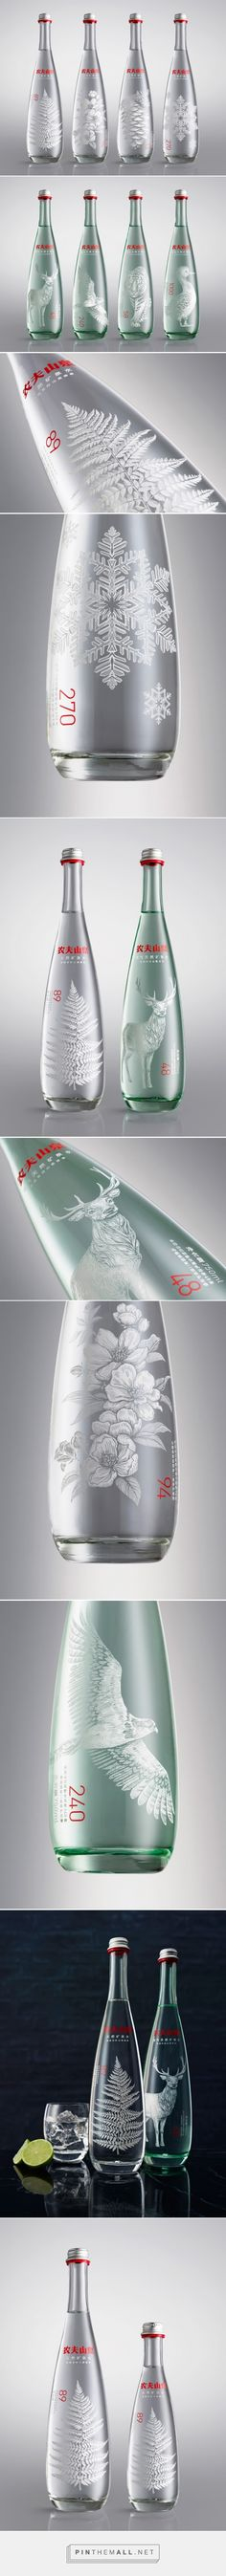 Nongfu Spring Mineral #Water #packaging by Horse - http://www.packagingoftheworld.com/2015/02/nongfu-spring-mineral-water.html